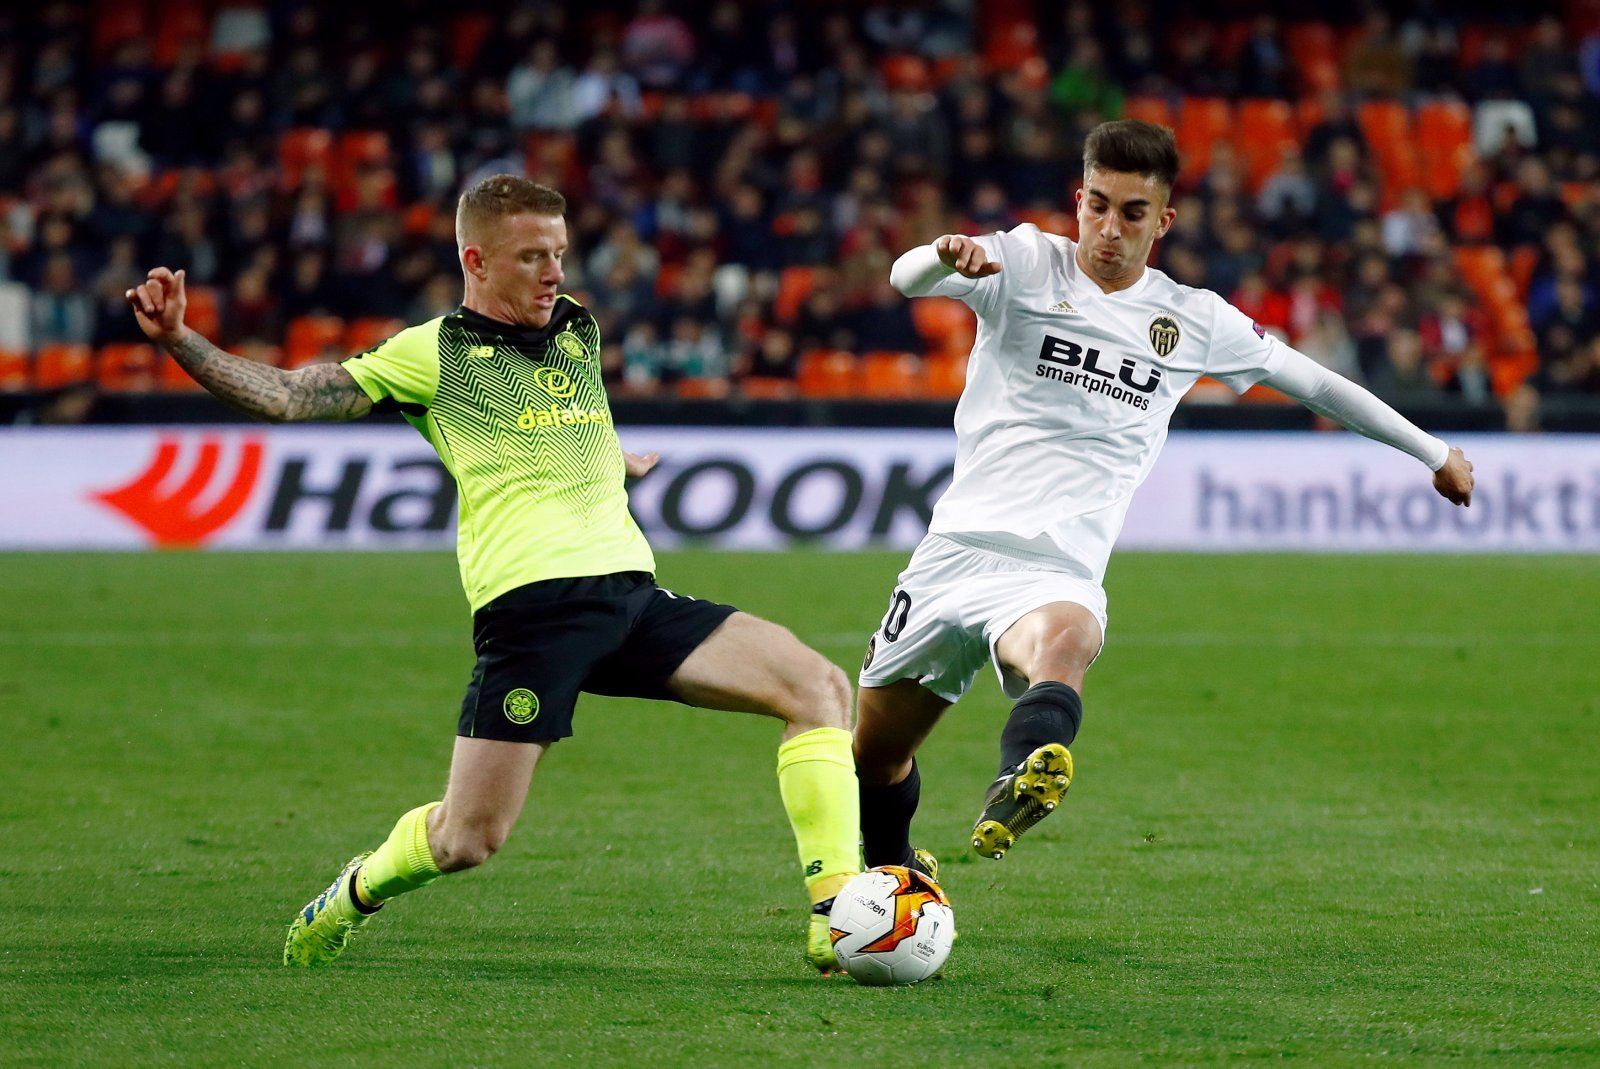 Liverpool: Reds join Borussia Dortmund in race to sign Valencia's Ferran Torres